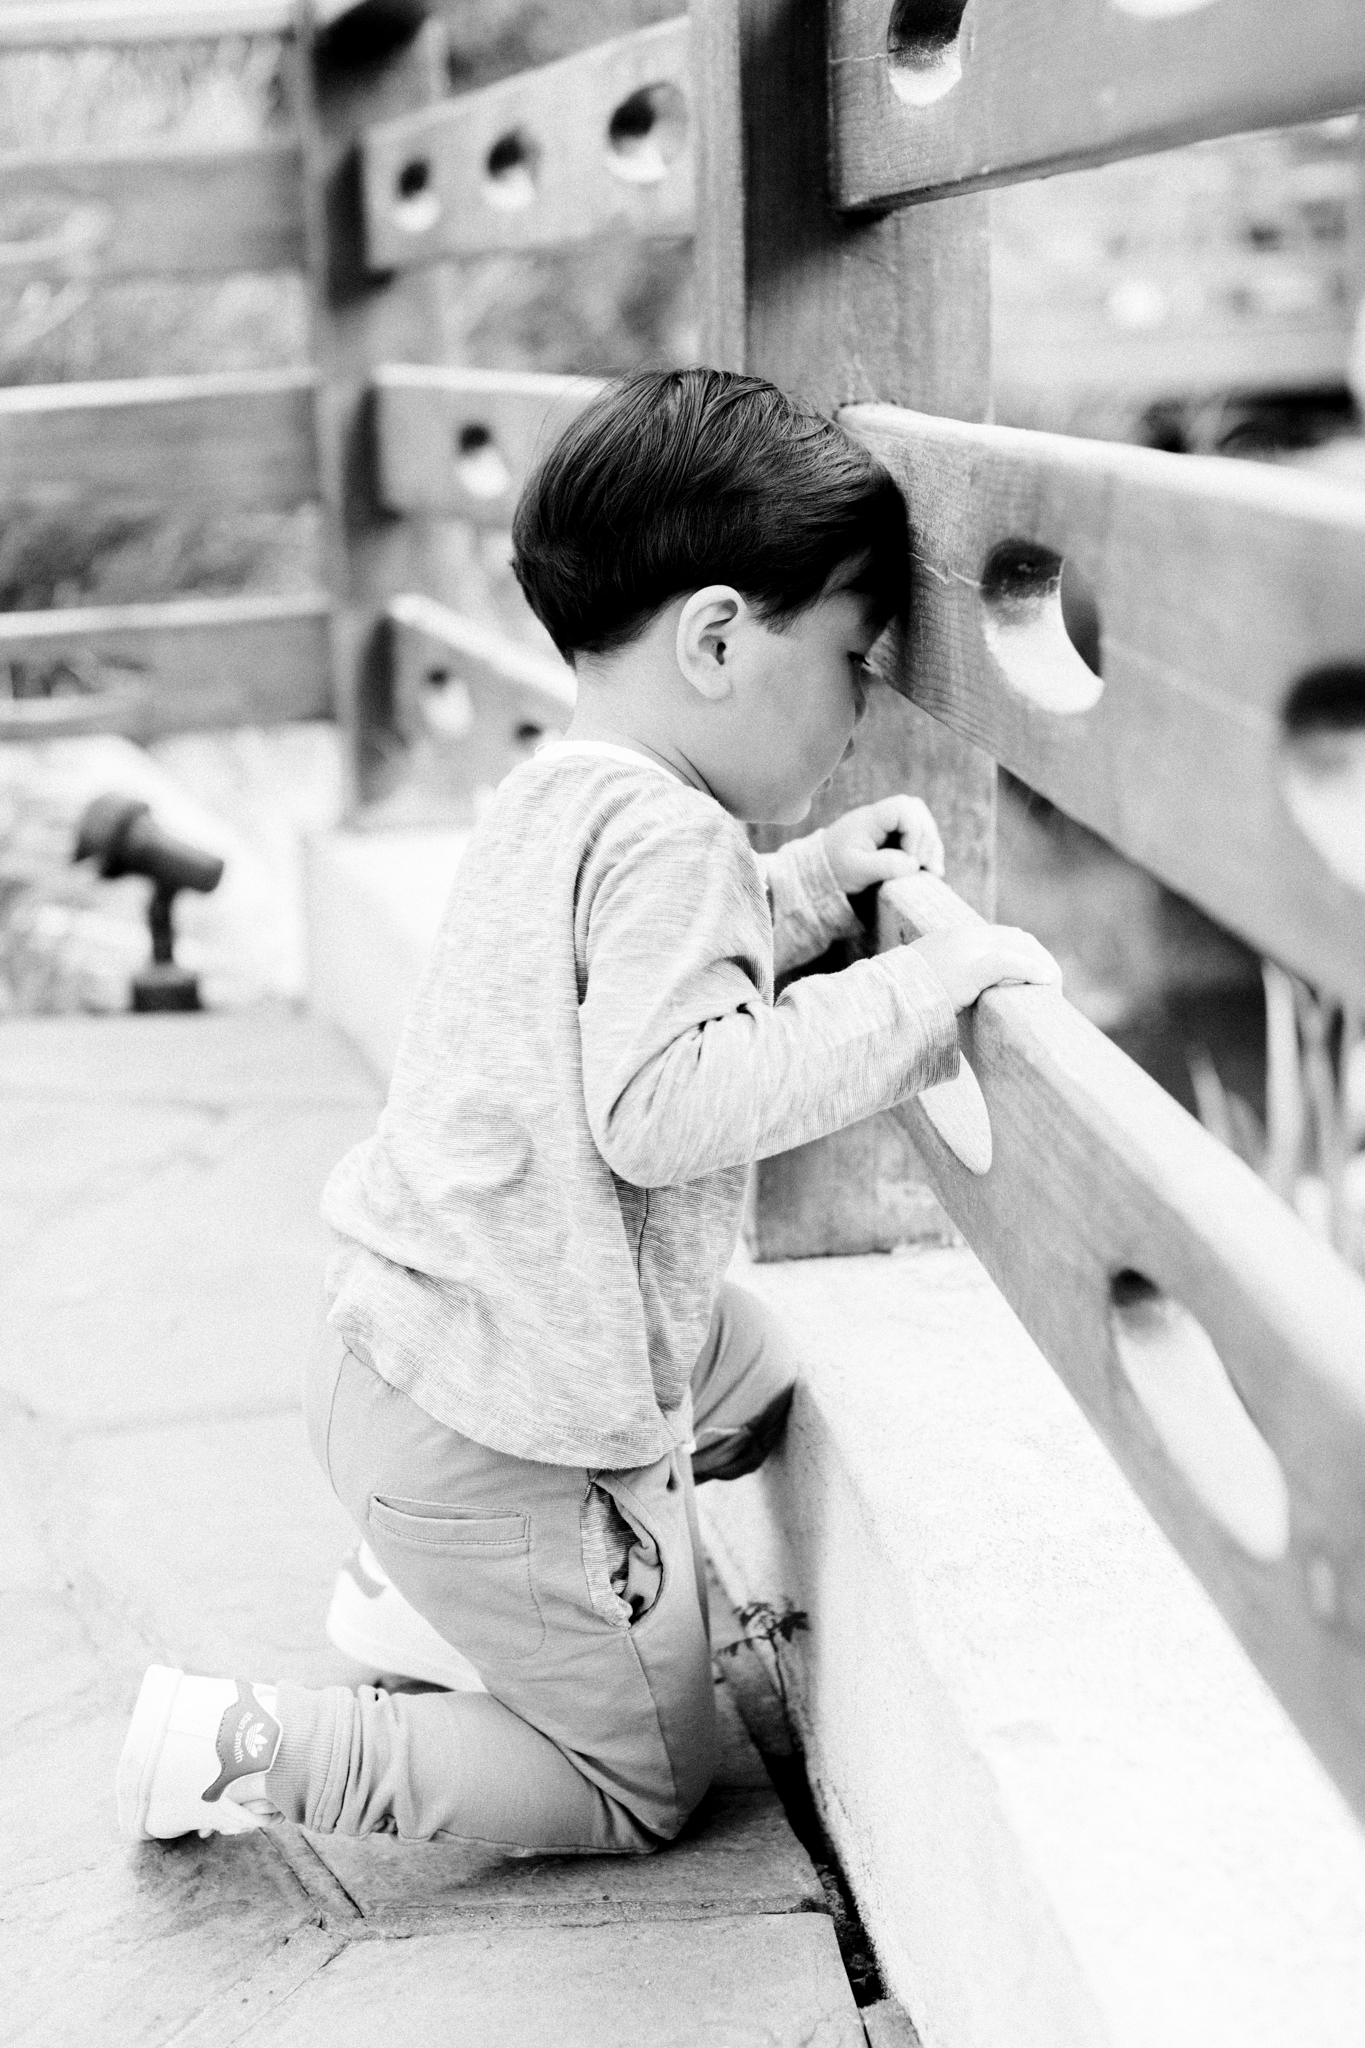 A young boy looking through the slats of a bridge during their family photography session in Cal Poly.